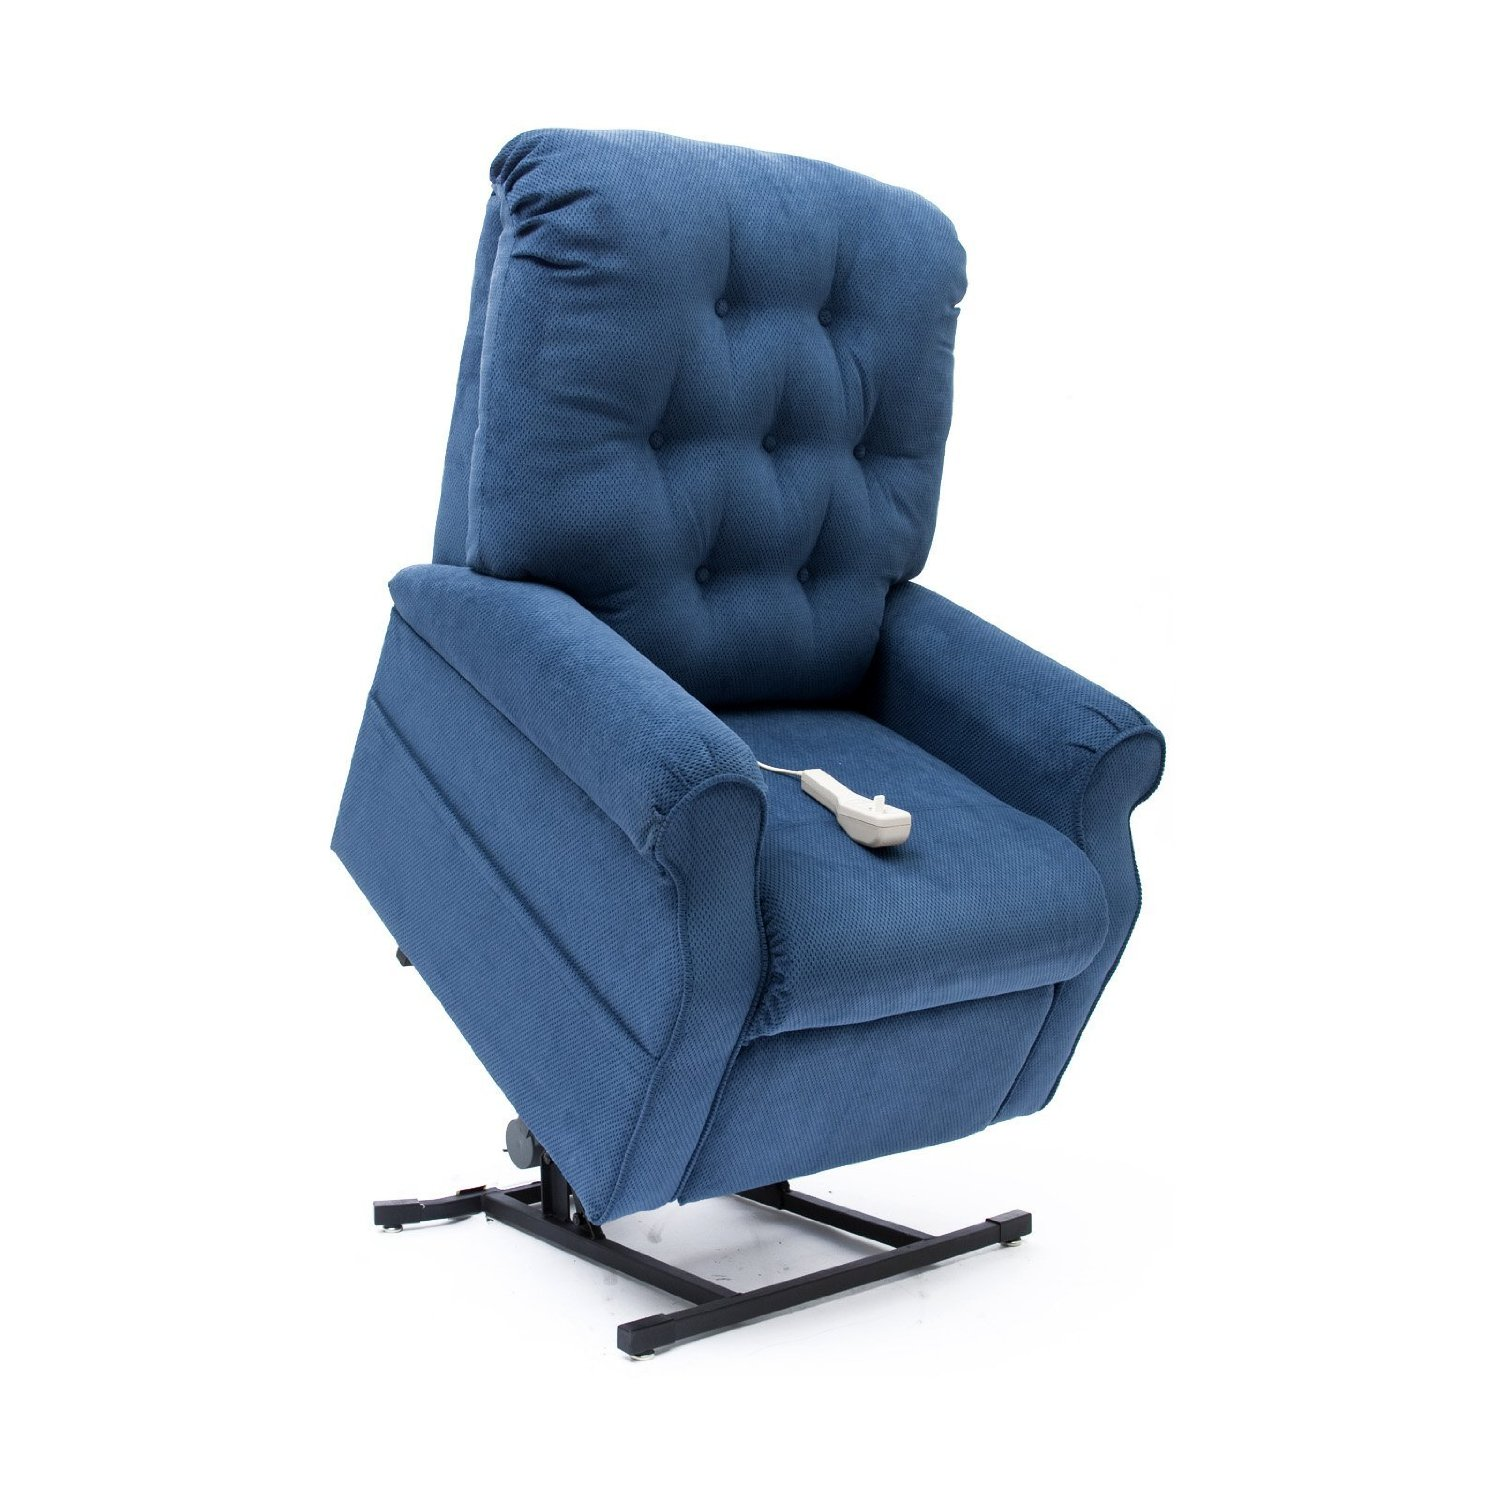 power lift chair living room chairs uk new navy blue easy comfort lc 200 electric